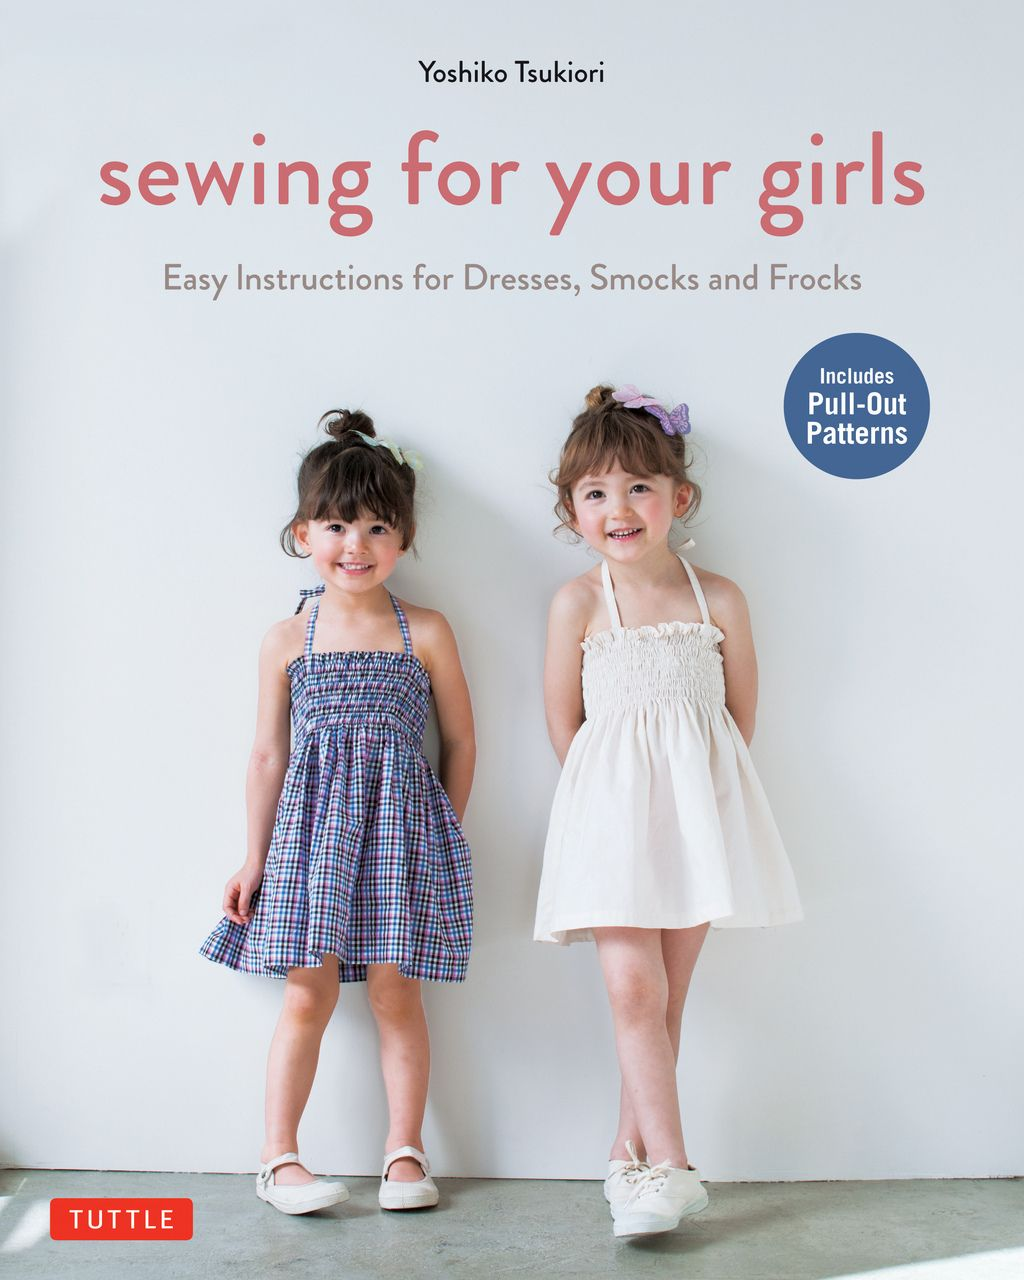 Sewing for your girls gift crafts craft kits and sewing patterns